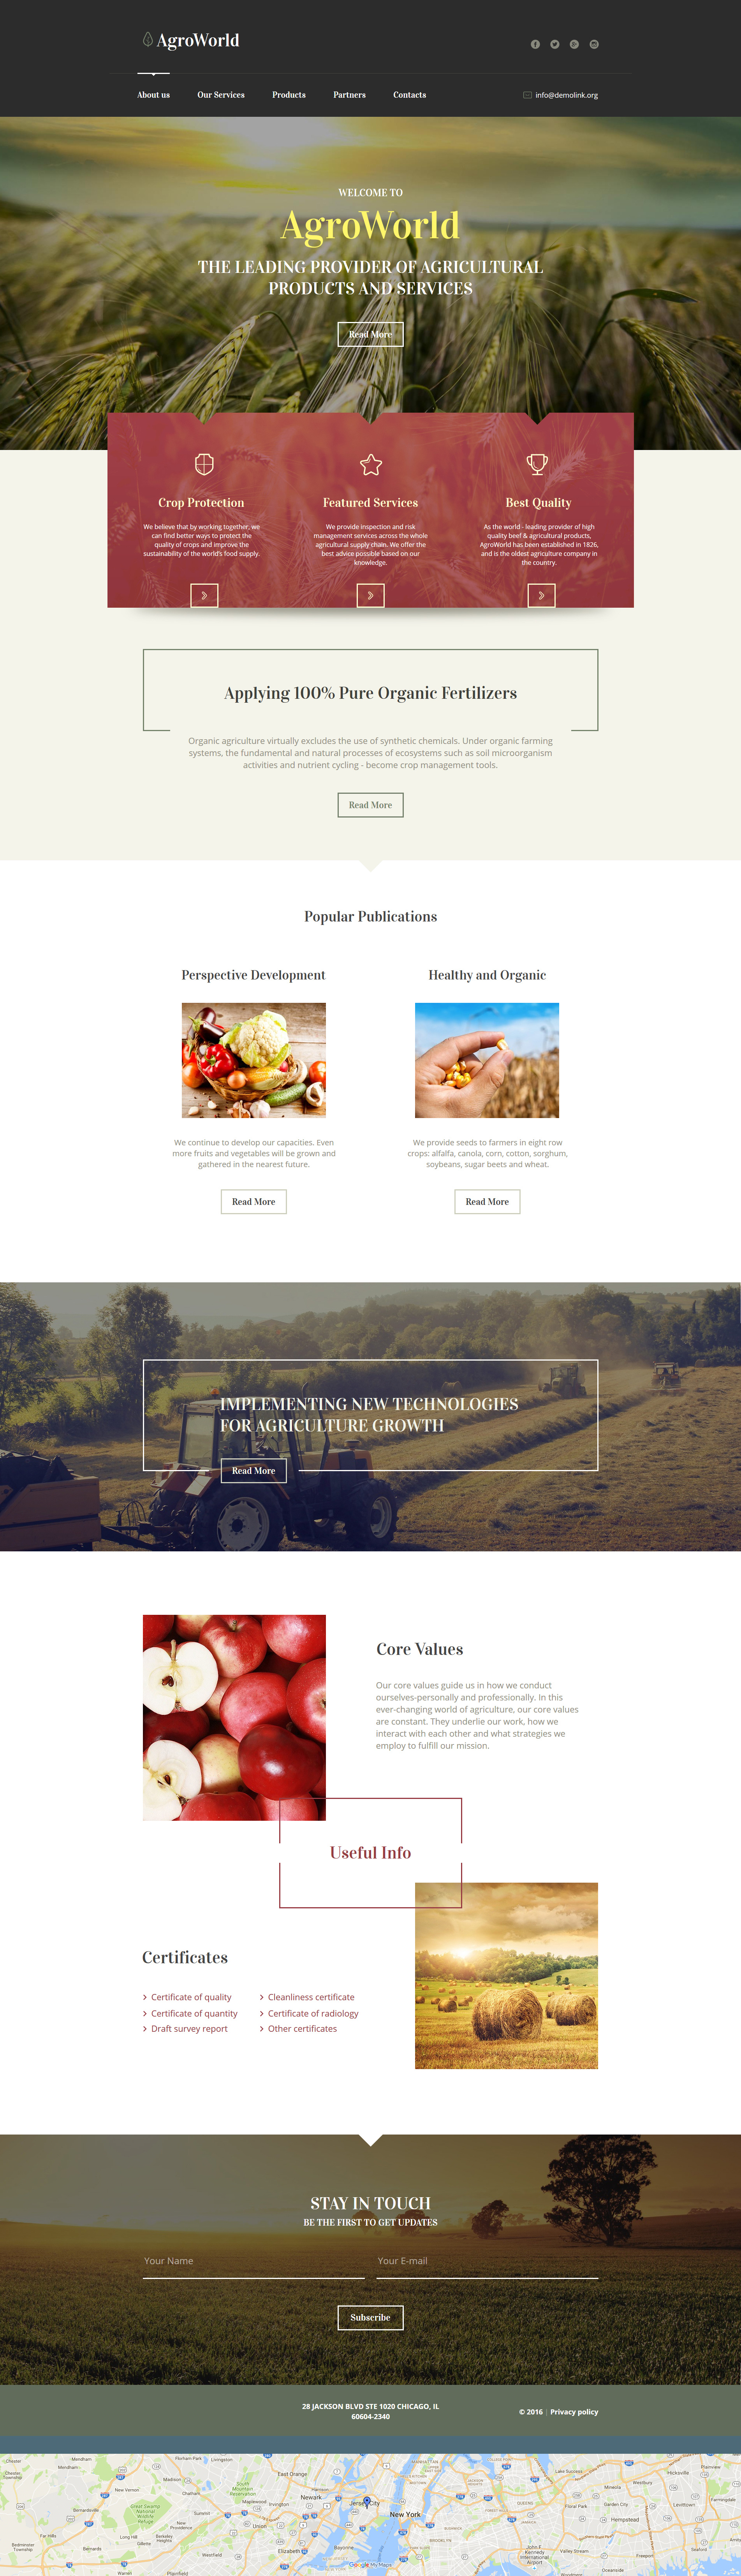 Agriculture Moto CMS HTML Template | Template, Website layout and ...